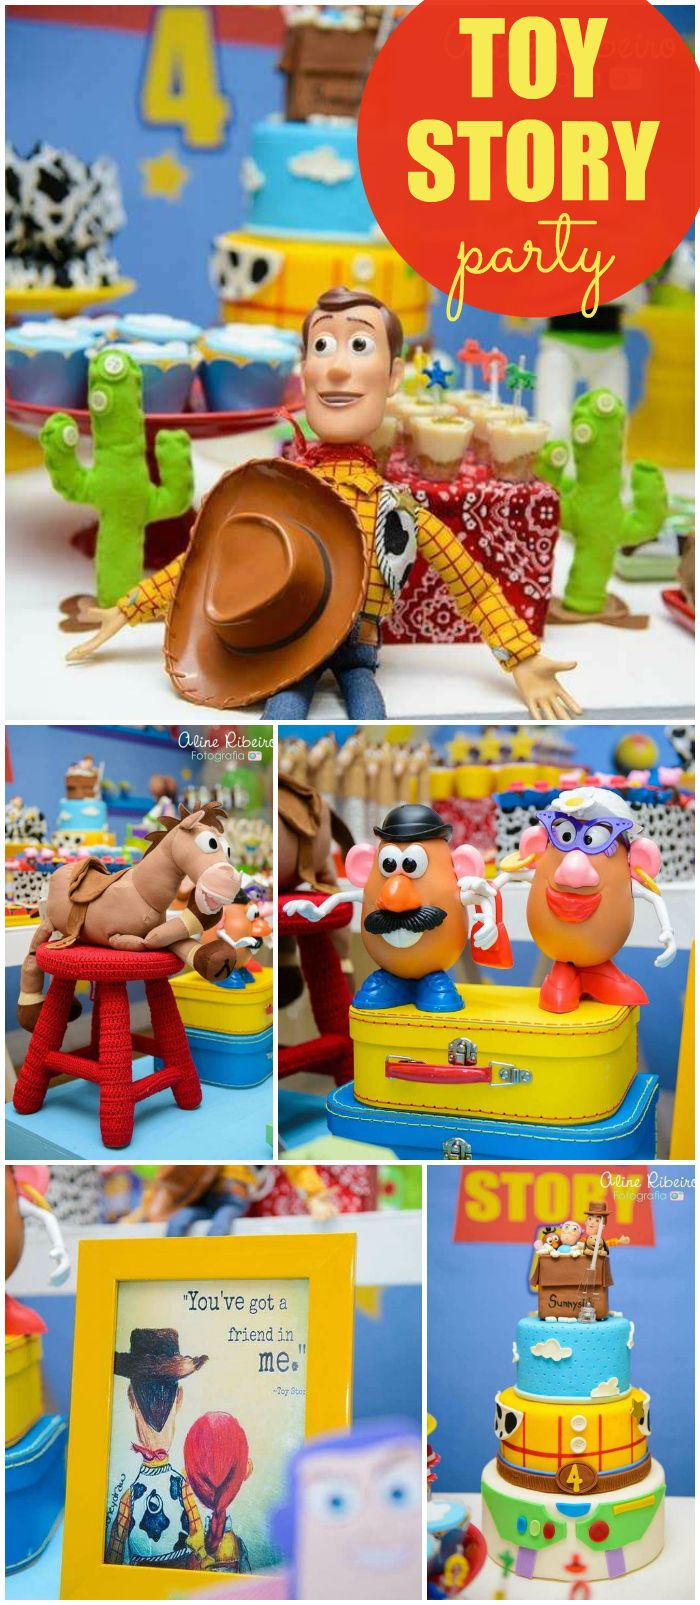 Toy story party ideas birthday in a box - Toy Story Birthday Jo O Pedro Story 4